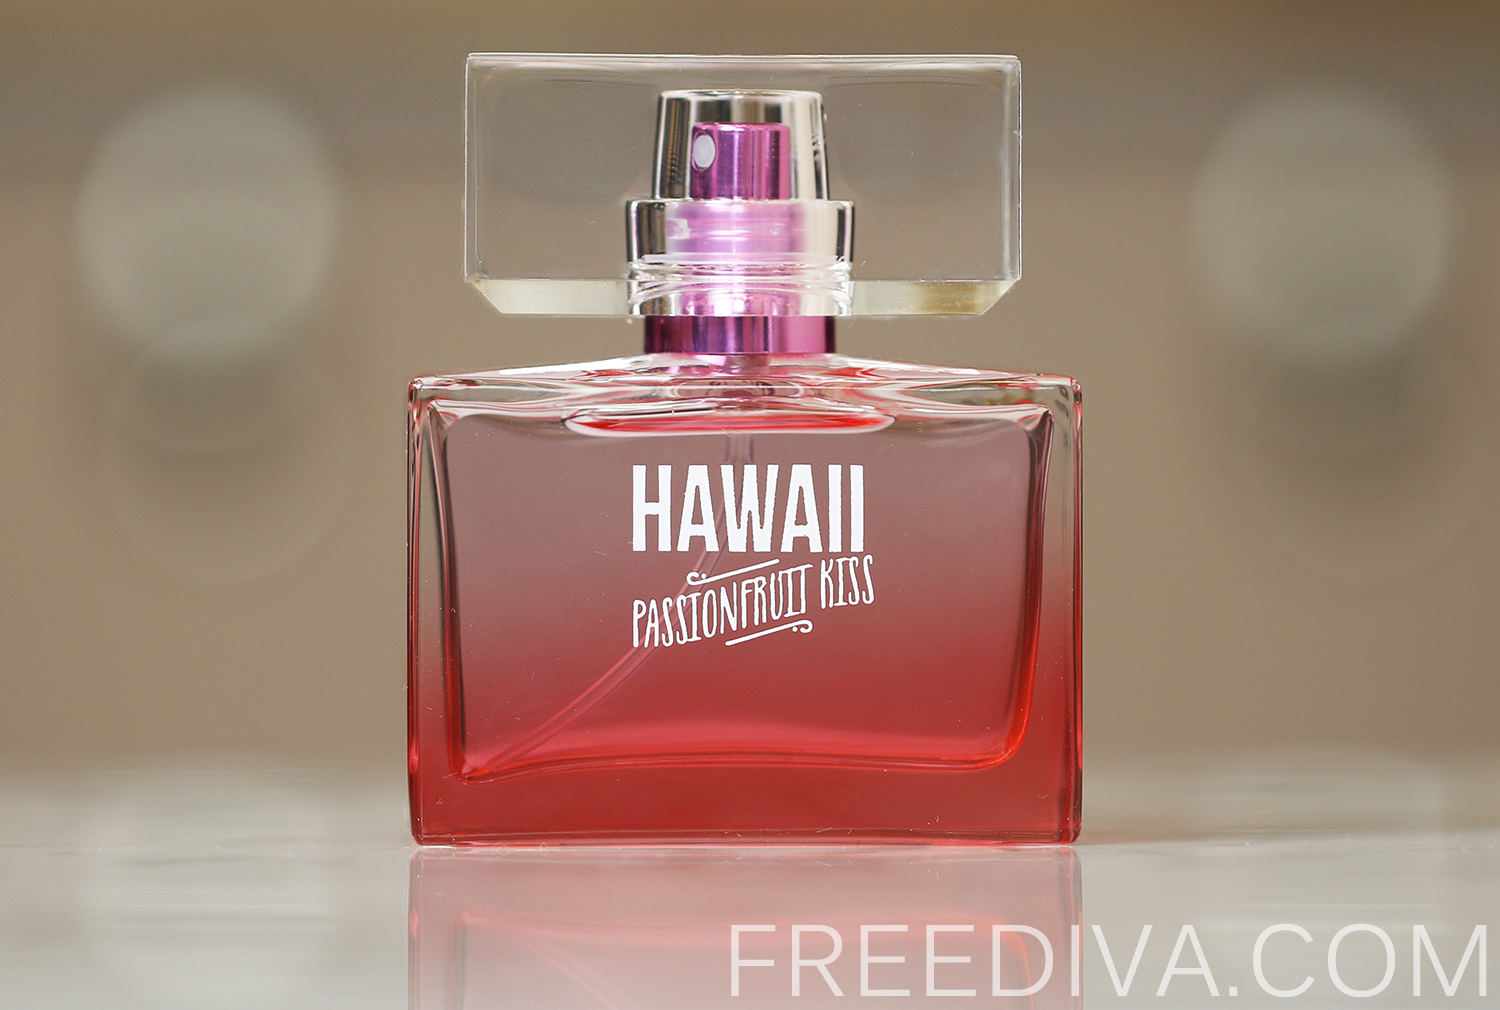 Hawaii Passionfruit Kiss Mini Perfume Bath & Body Works